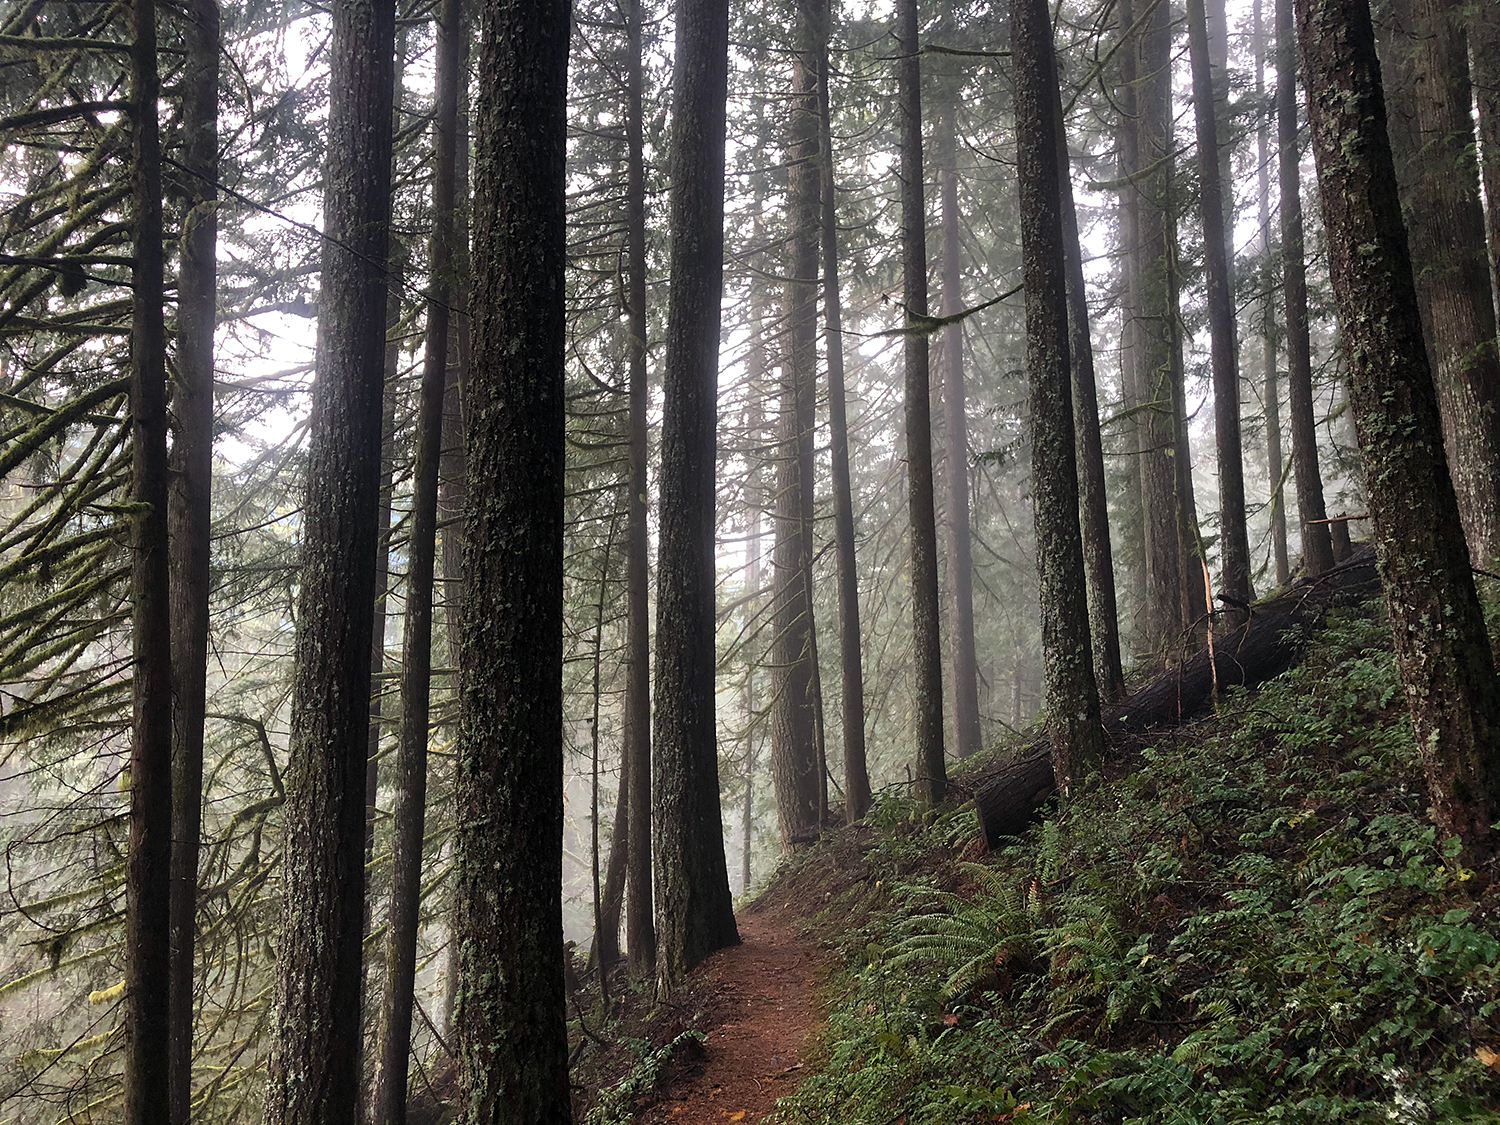 A view along the Hunchback mountain trail, featuring some trees, a trail, some mist, and the suggestion of a distant view.